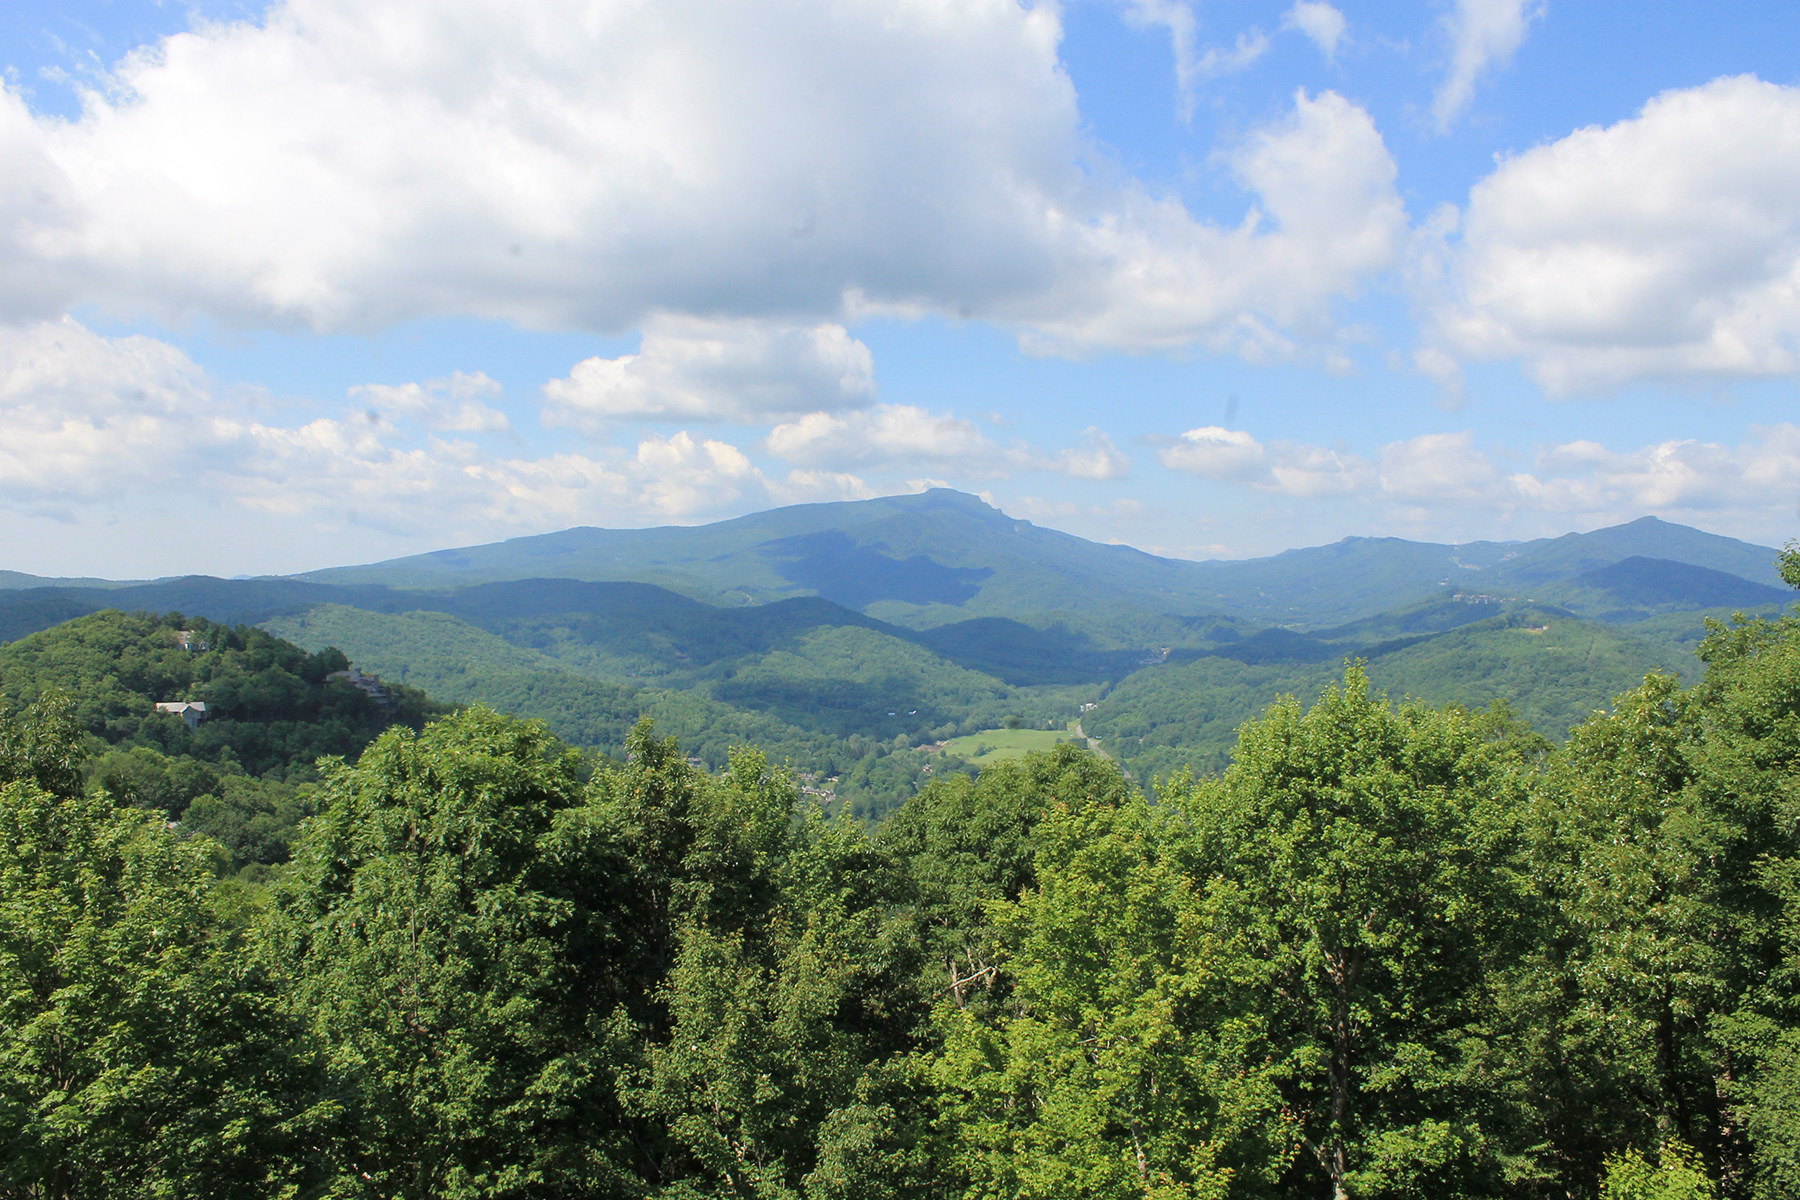 Single Family Home for Sale at BOONE - YONAHLOSSEE SADDLE CLUB 259 Hialeah Road Rd Boone, North Carolina, 28607 United States